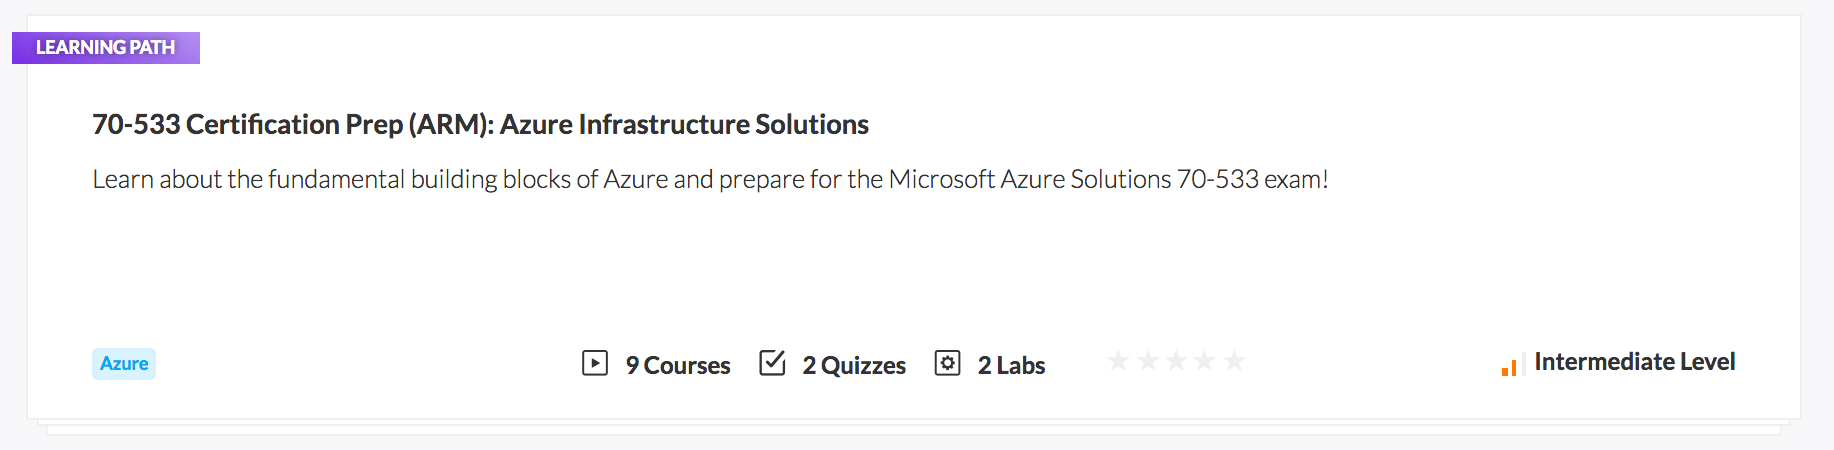 70-533 Certification Prep (ARM): Azure Infrastructure Solutions